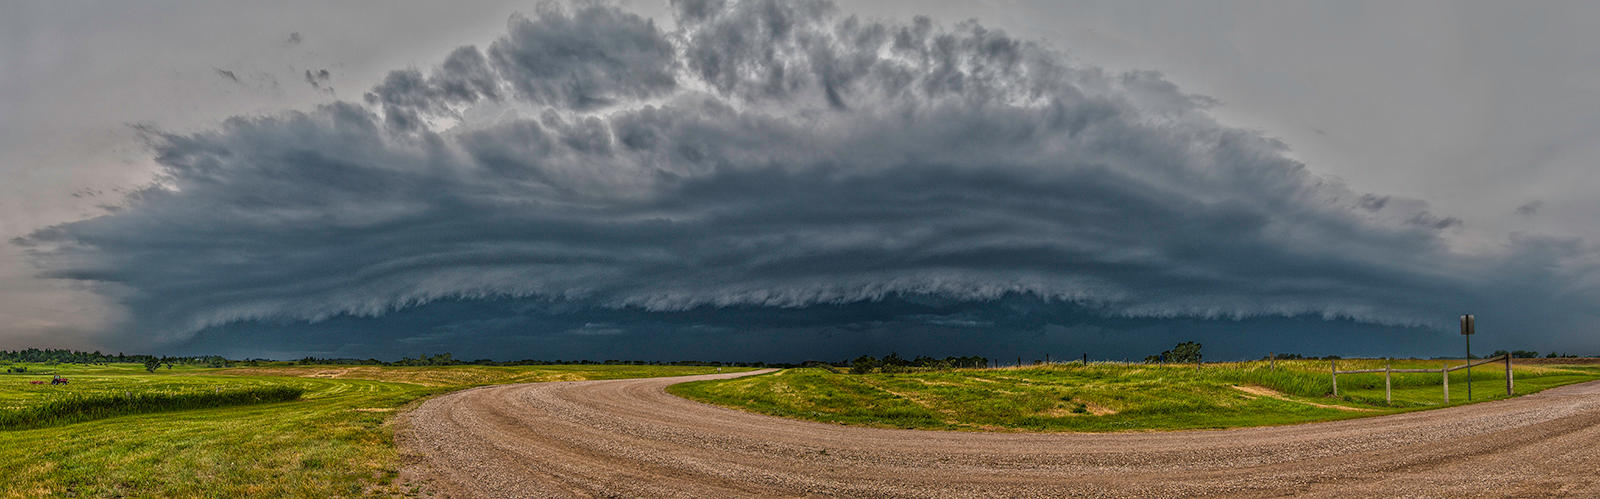 Storm Front HDR